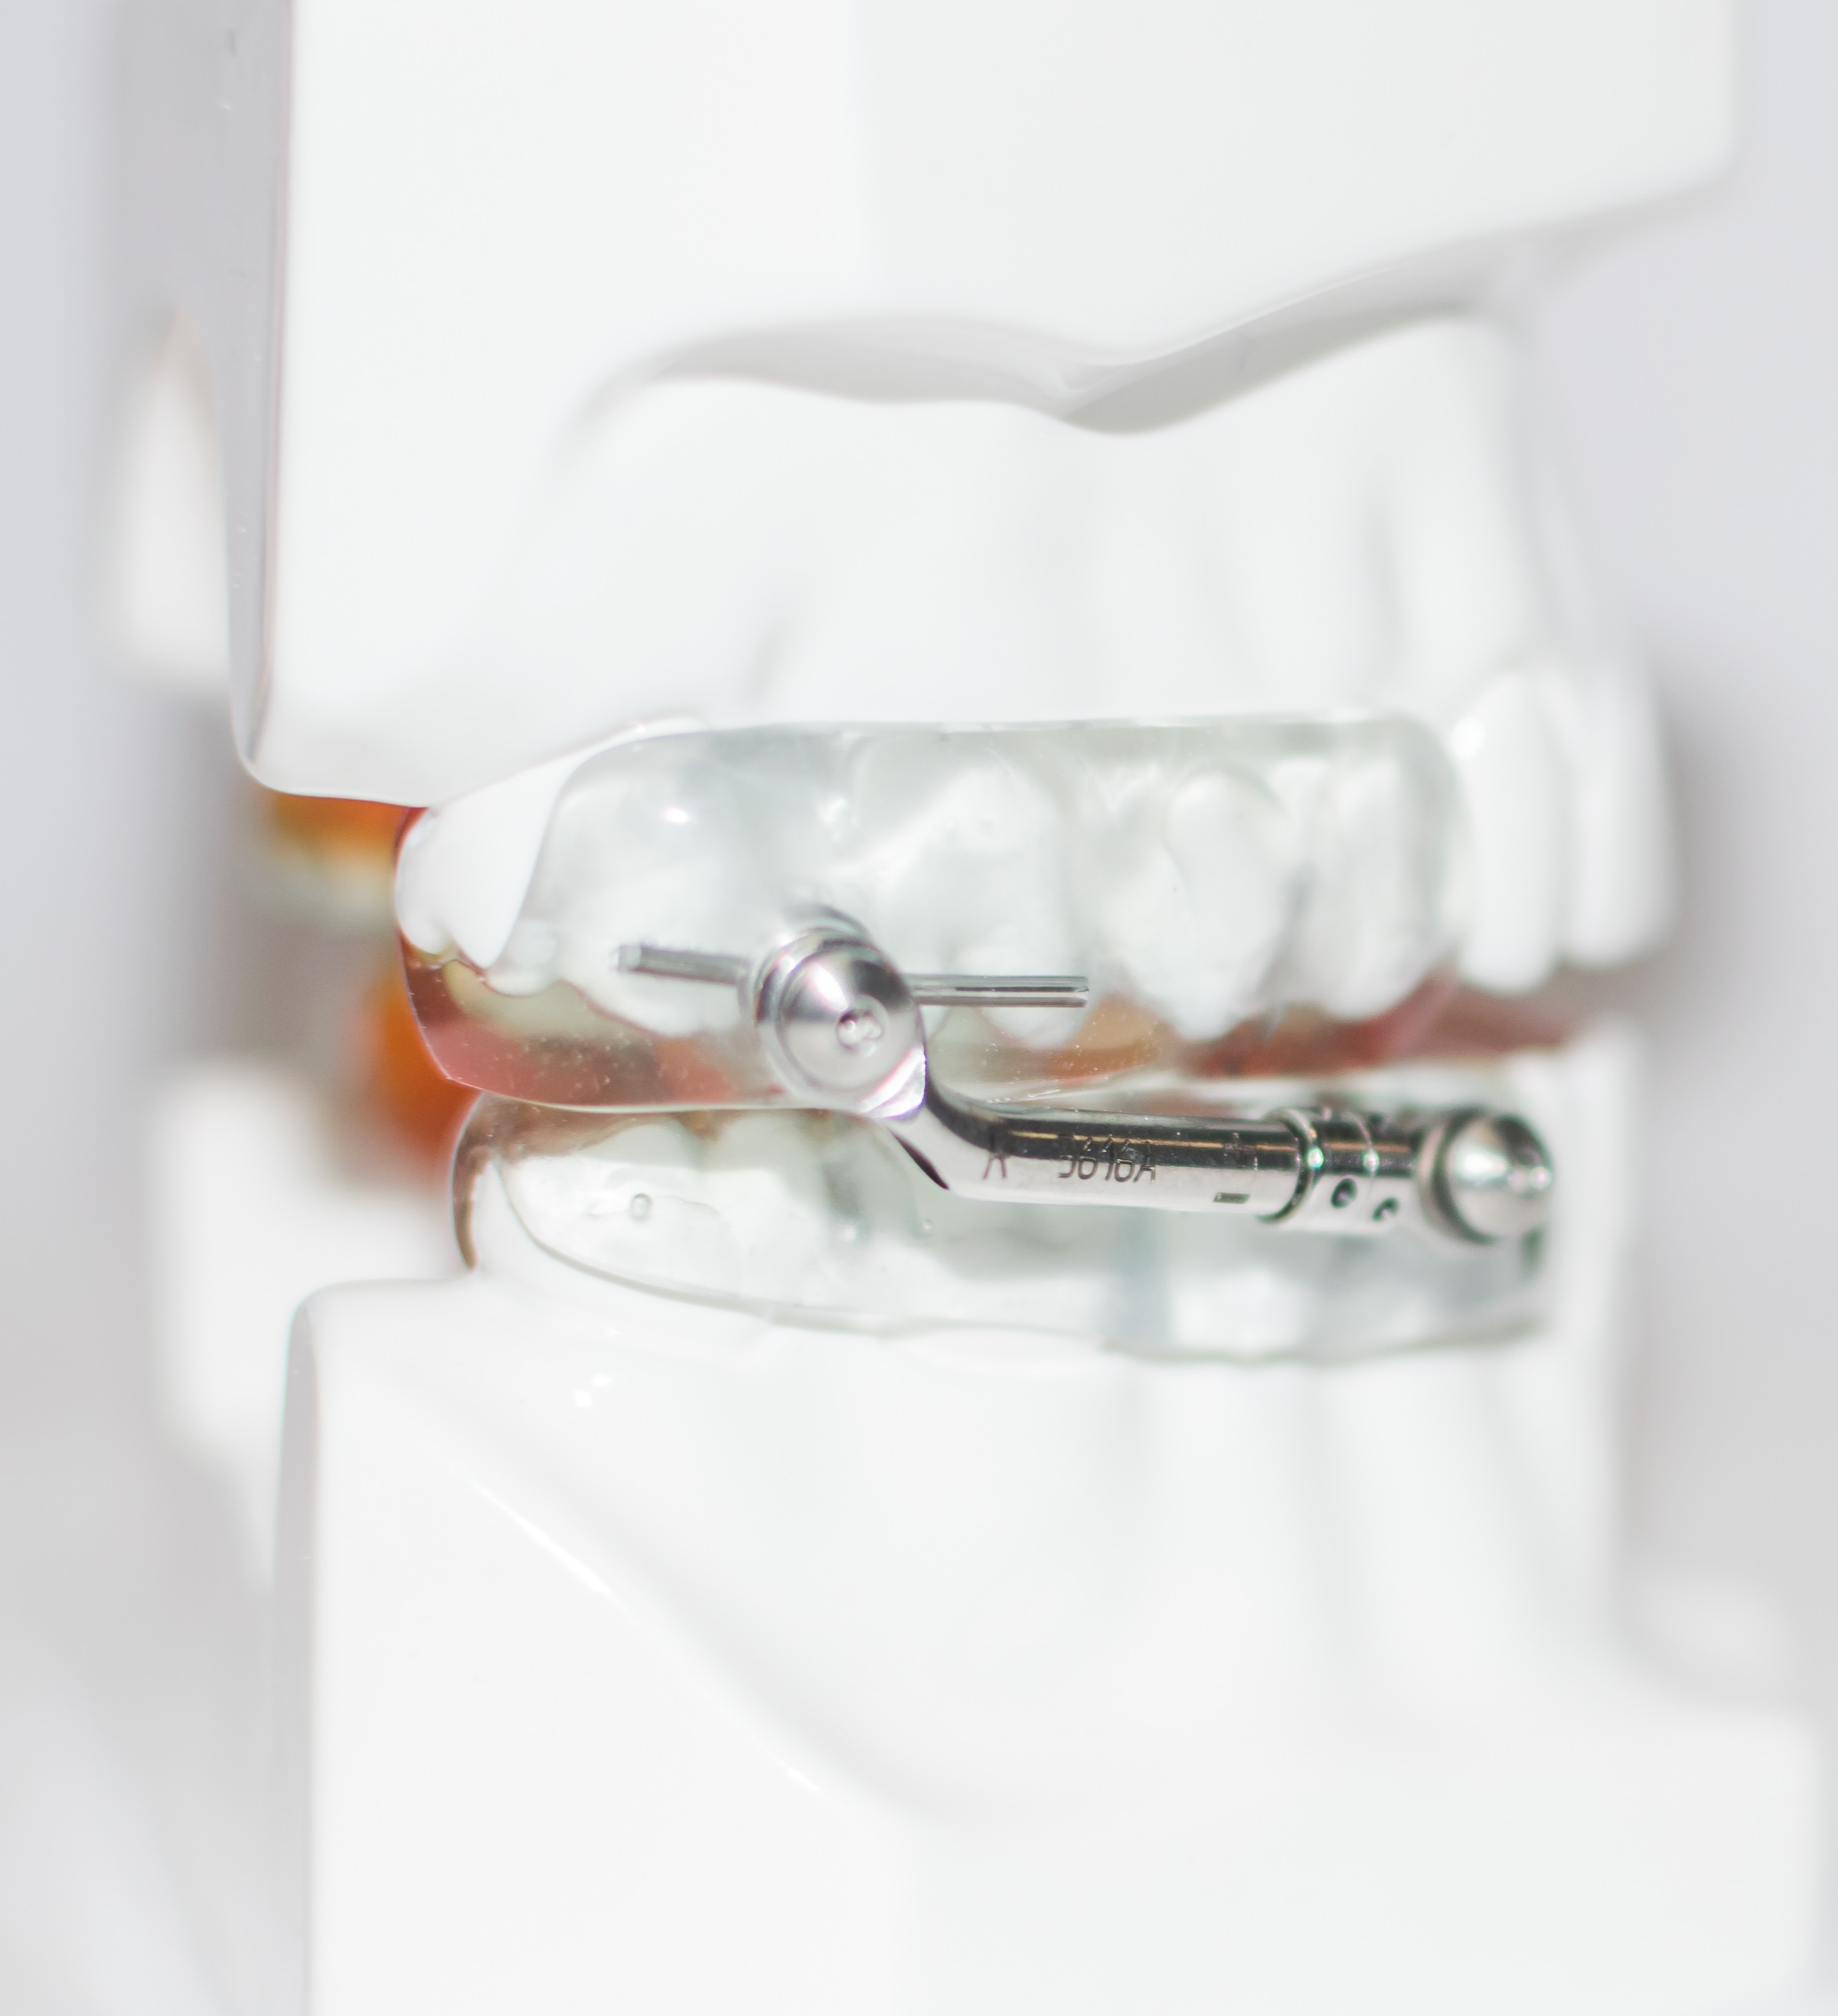 Oravan Herbst has an upper and lower component connected with telescopic arms. The arms allow for easy vertical and lateral movement, which is often beneficial for those patients that brux or grind their teeth while sleepeing.